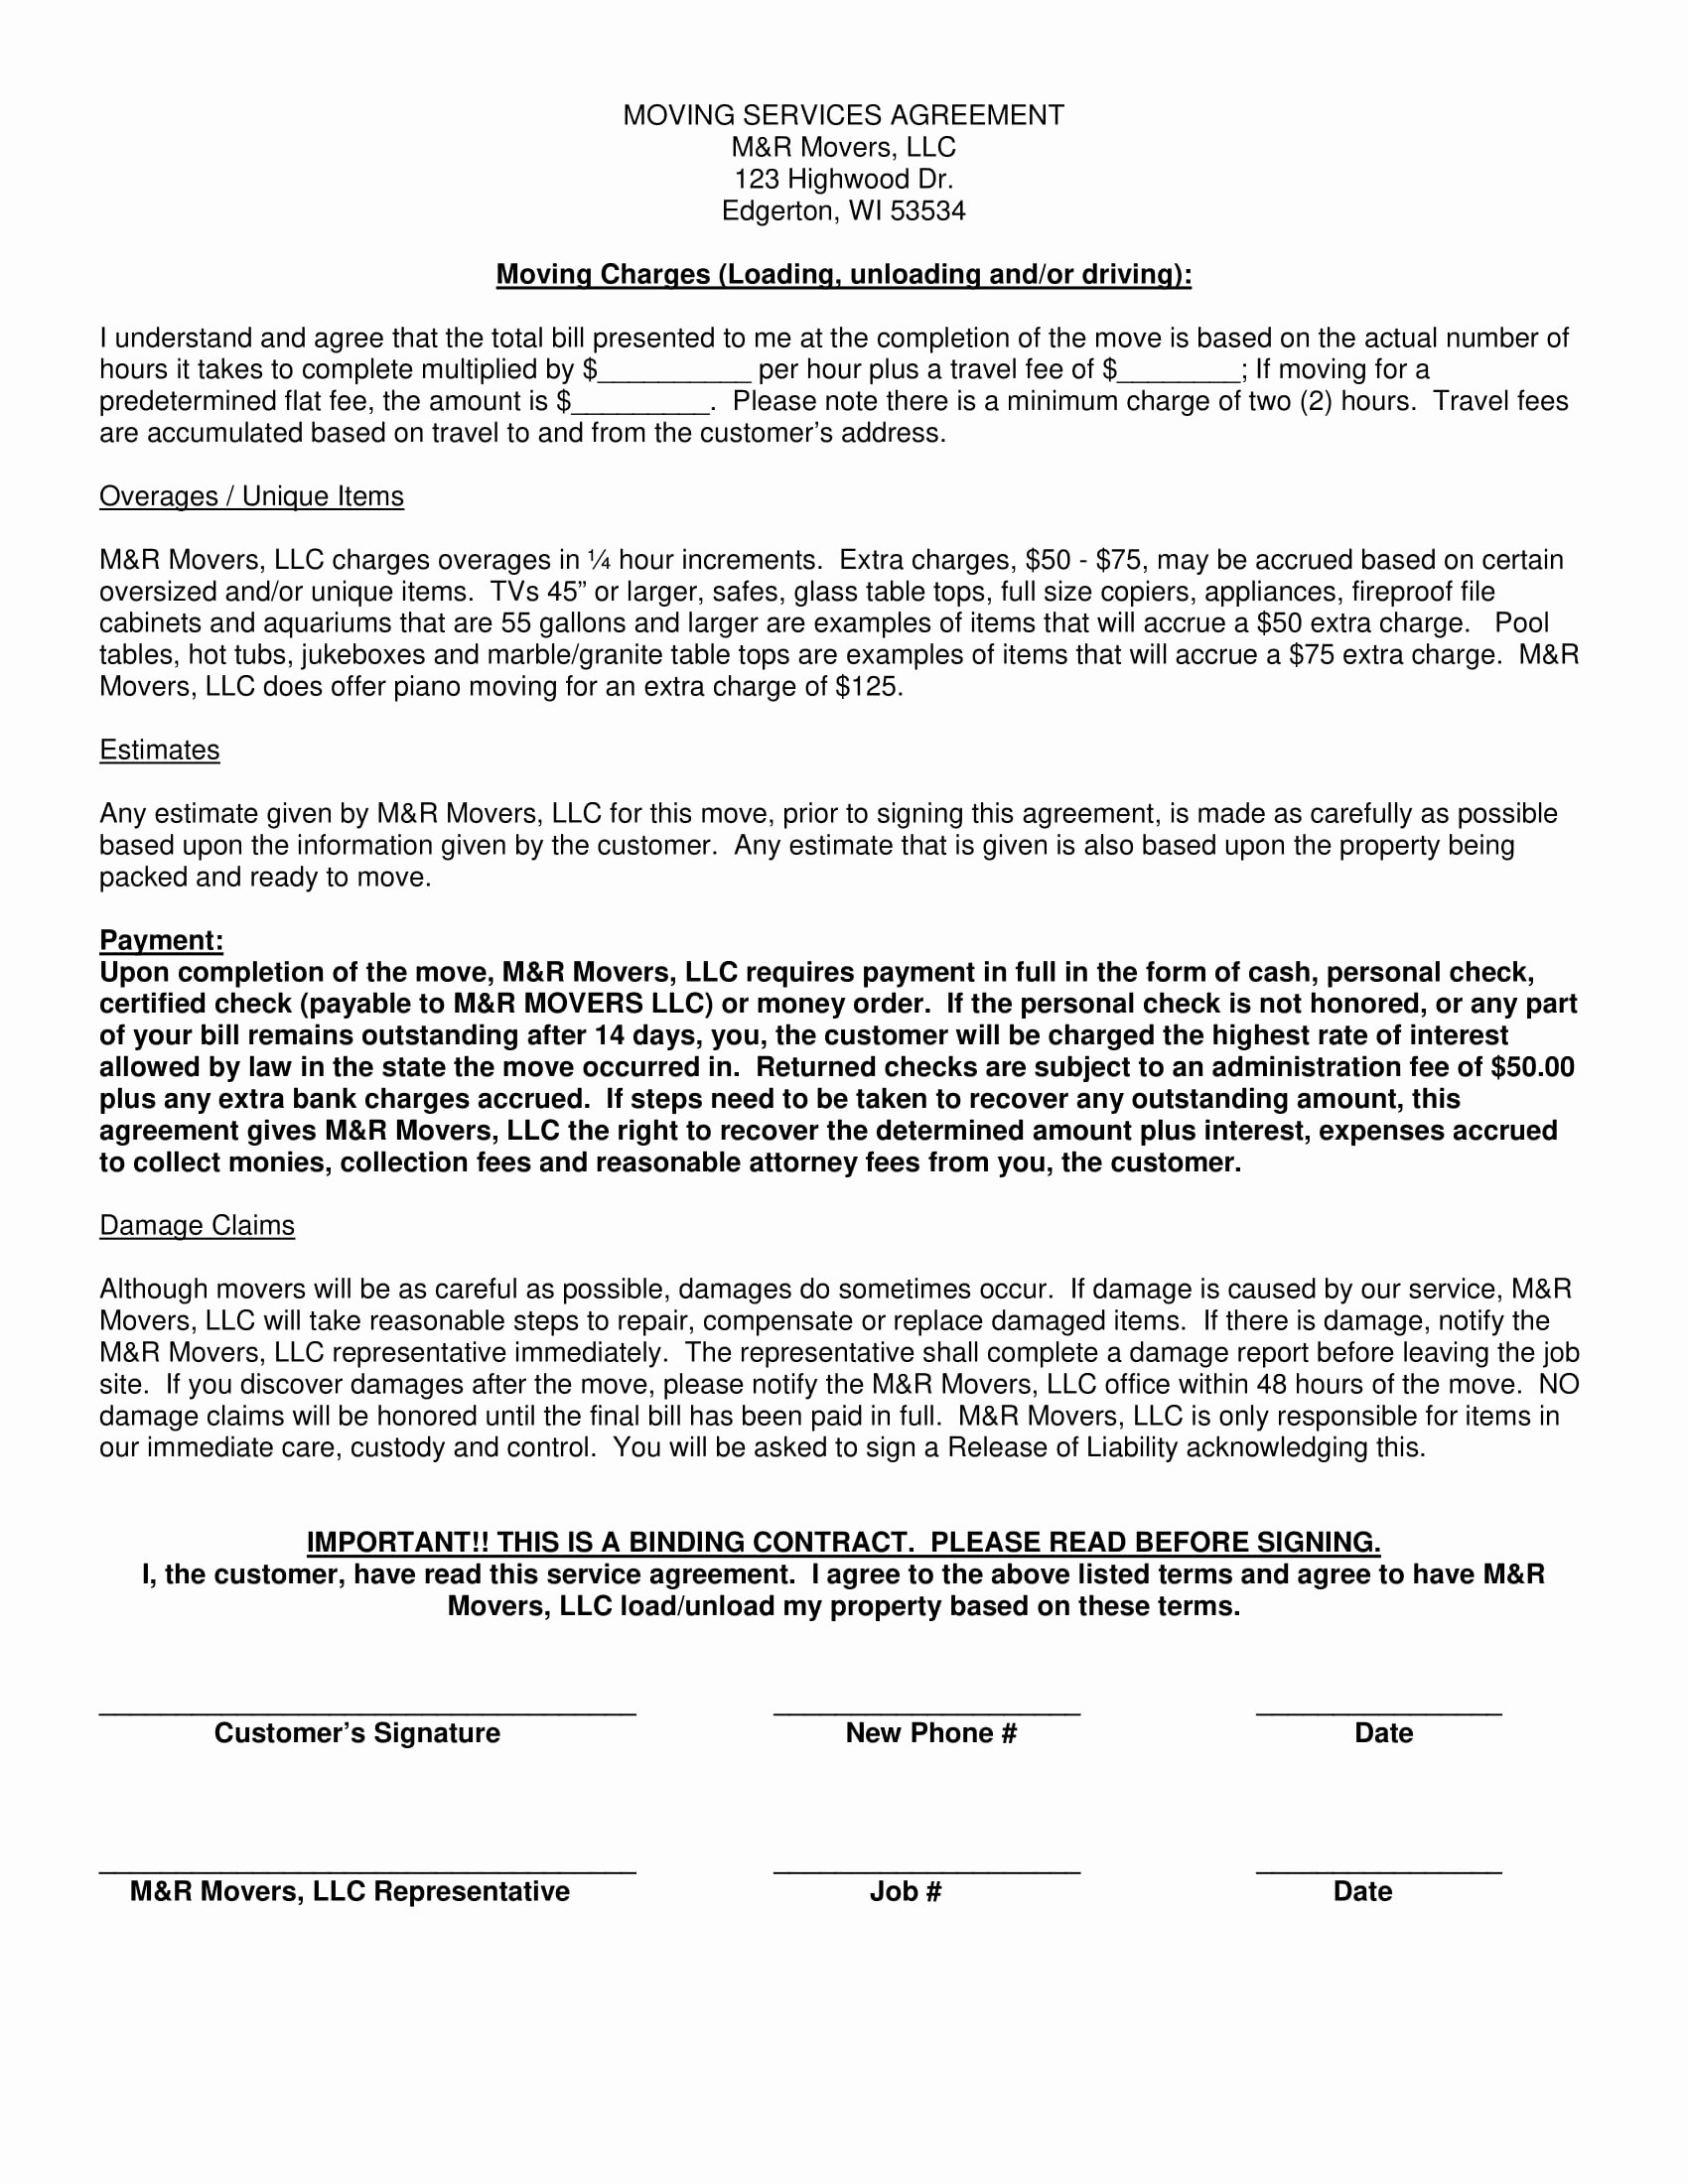 Employee Relocation Agreement Sample Awesome 11 Moving Pany Contract Templates Word Docs